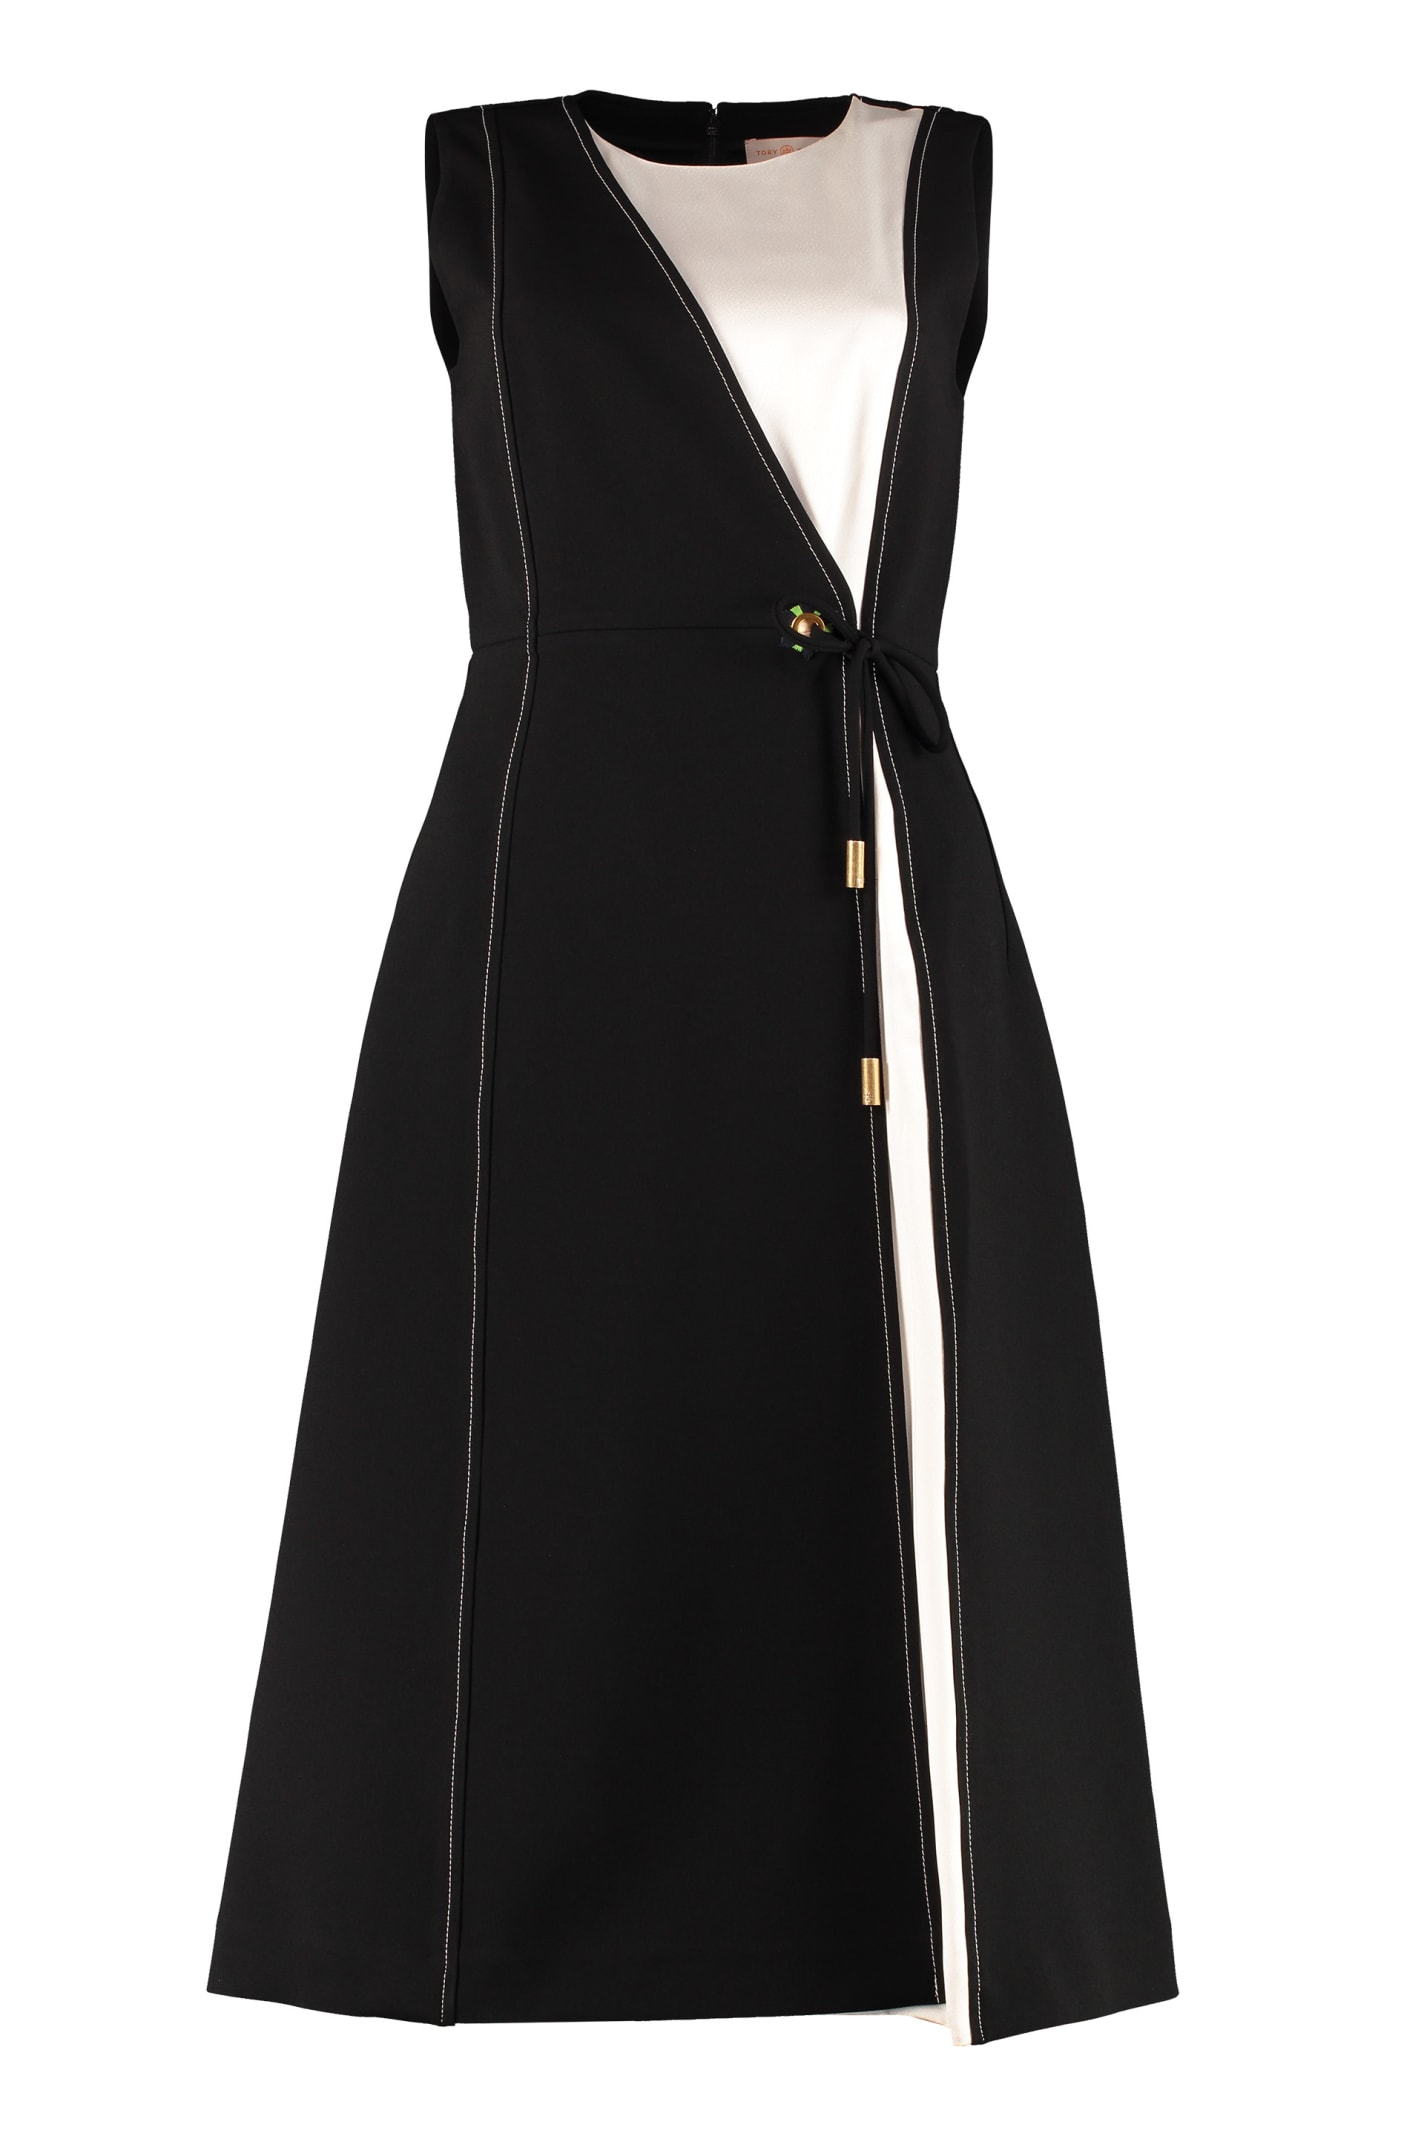 Buy Tory Burch Color-block Wrap Dress online, shop Tory Burch with free shipping